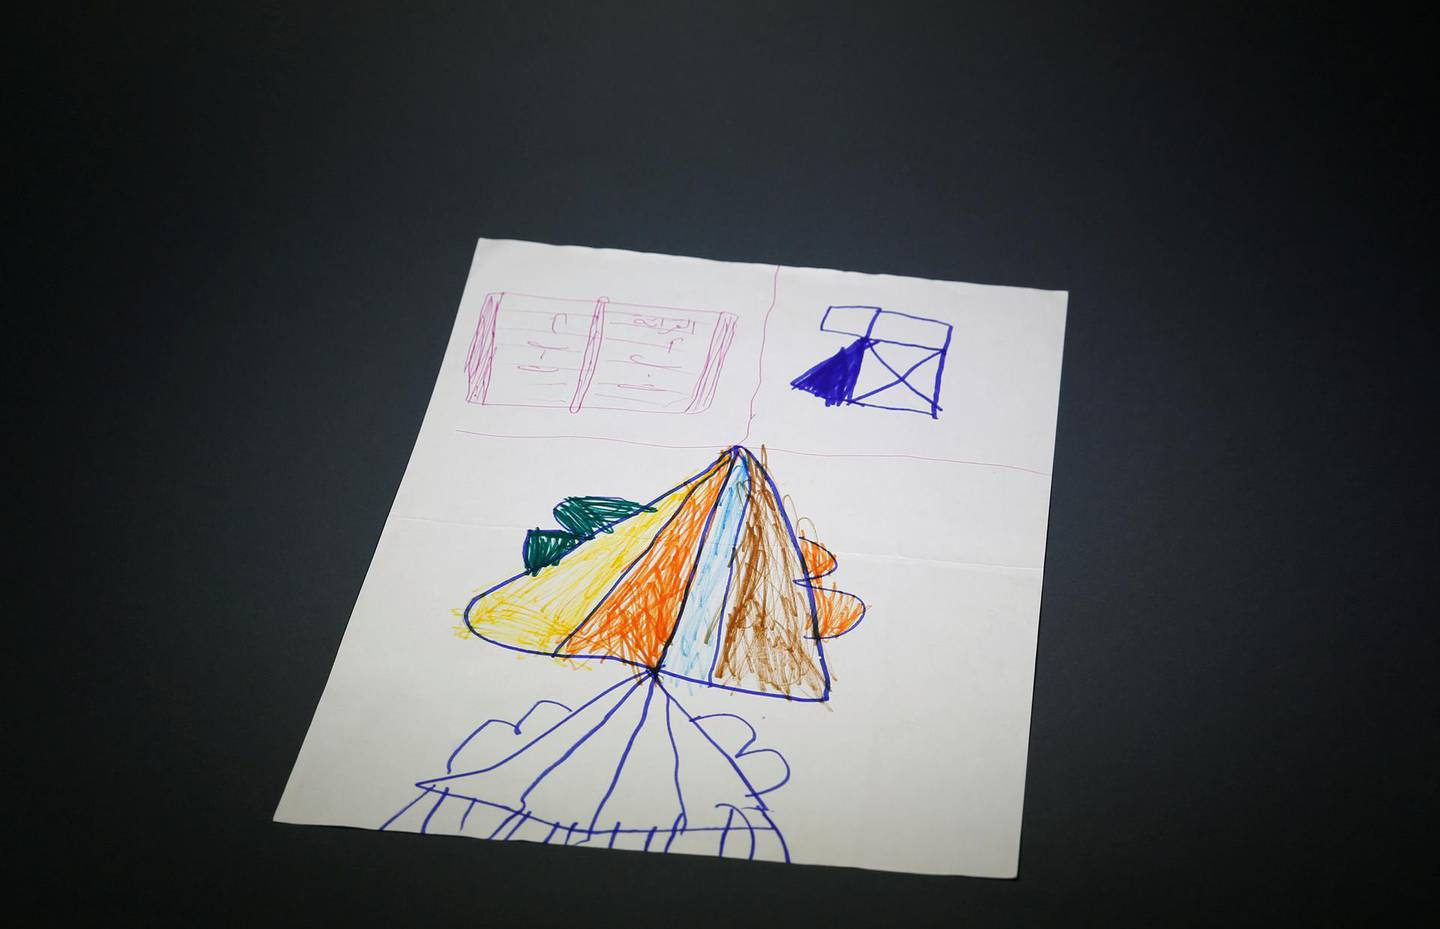 """A drawing of an aeroplane is seen at the War Childhood Museum before exhibition in Sarajevo, Bosnia and Herzegovina, January 25, 2019. """"I don't remember anything about Syria, as I was only two years old when we left. I made this drawing of an airplane that I will someday take to see Syria from the sky"""", said Mohamad who was born in 2011. Picture taken January 25, 2019. REUTERS/Dado Ruvic"""